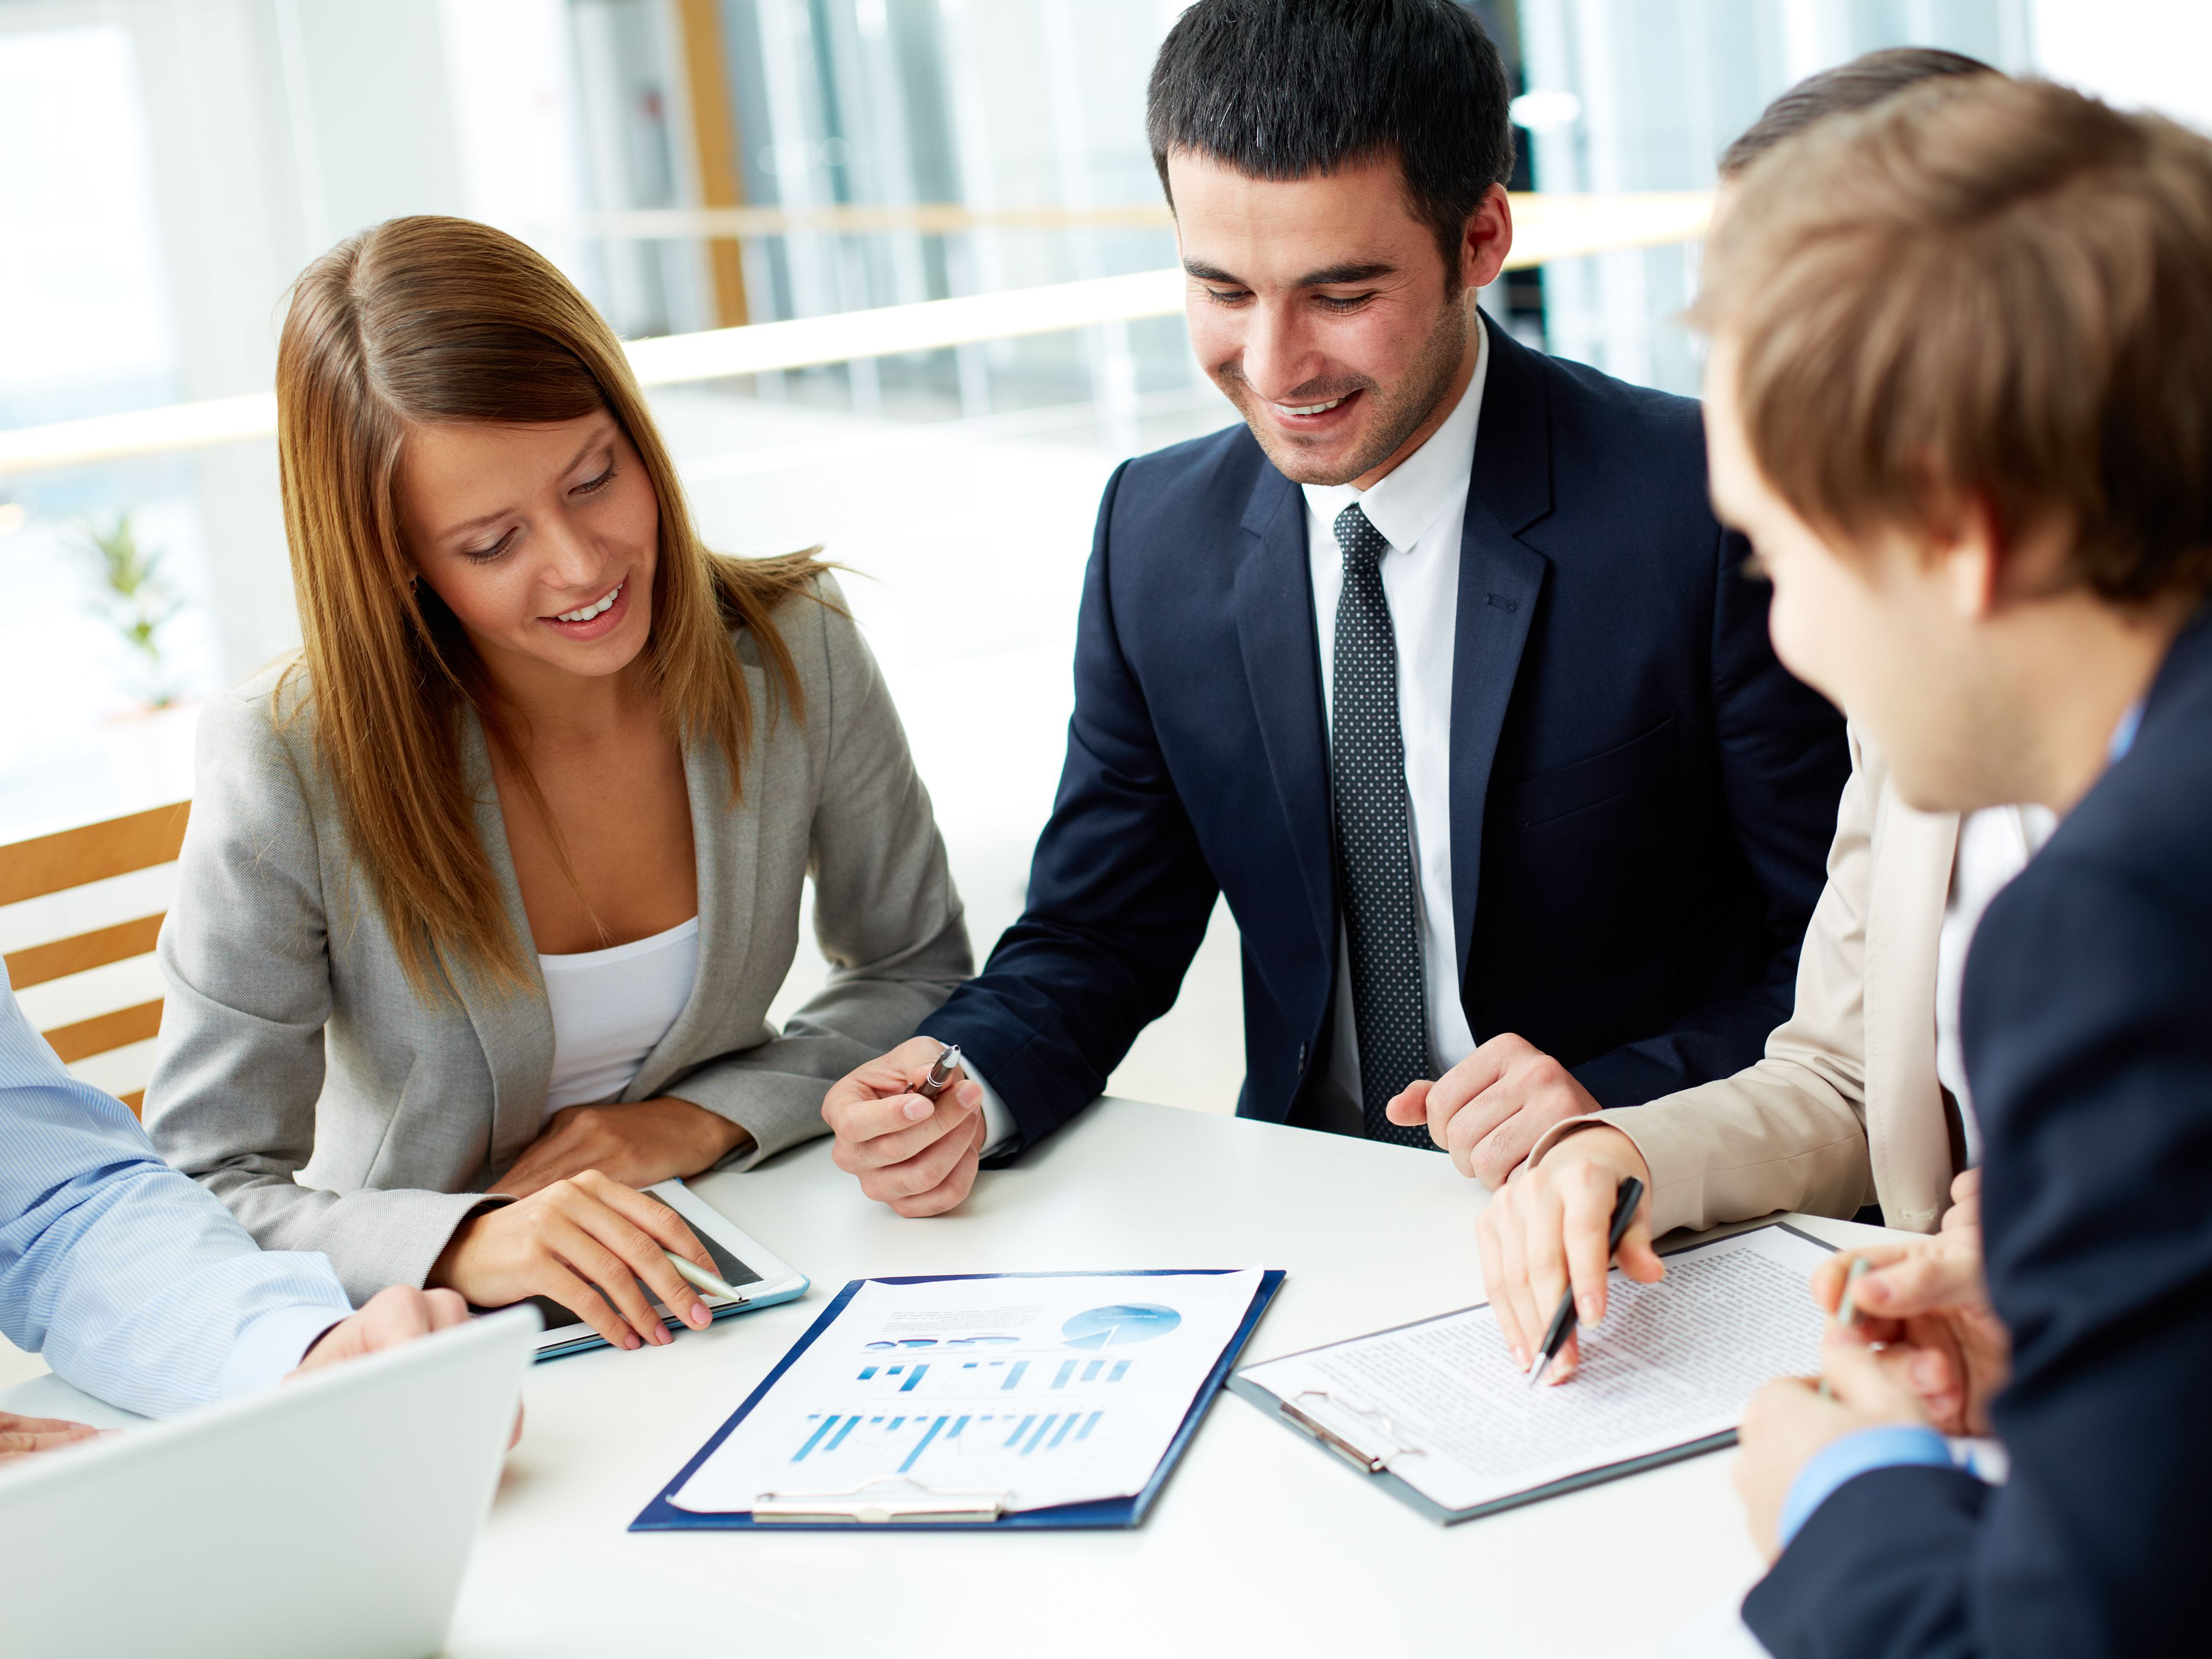 Why Talent Management Is an Important Business Strategy